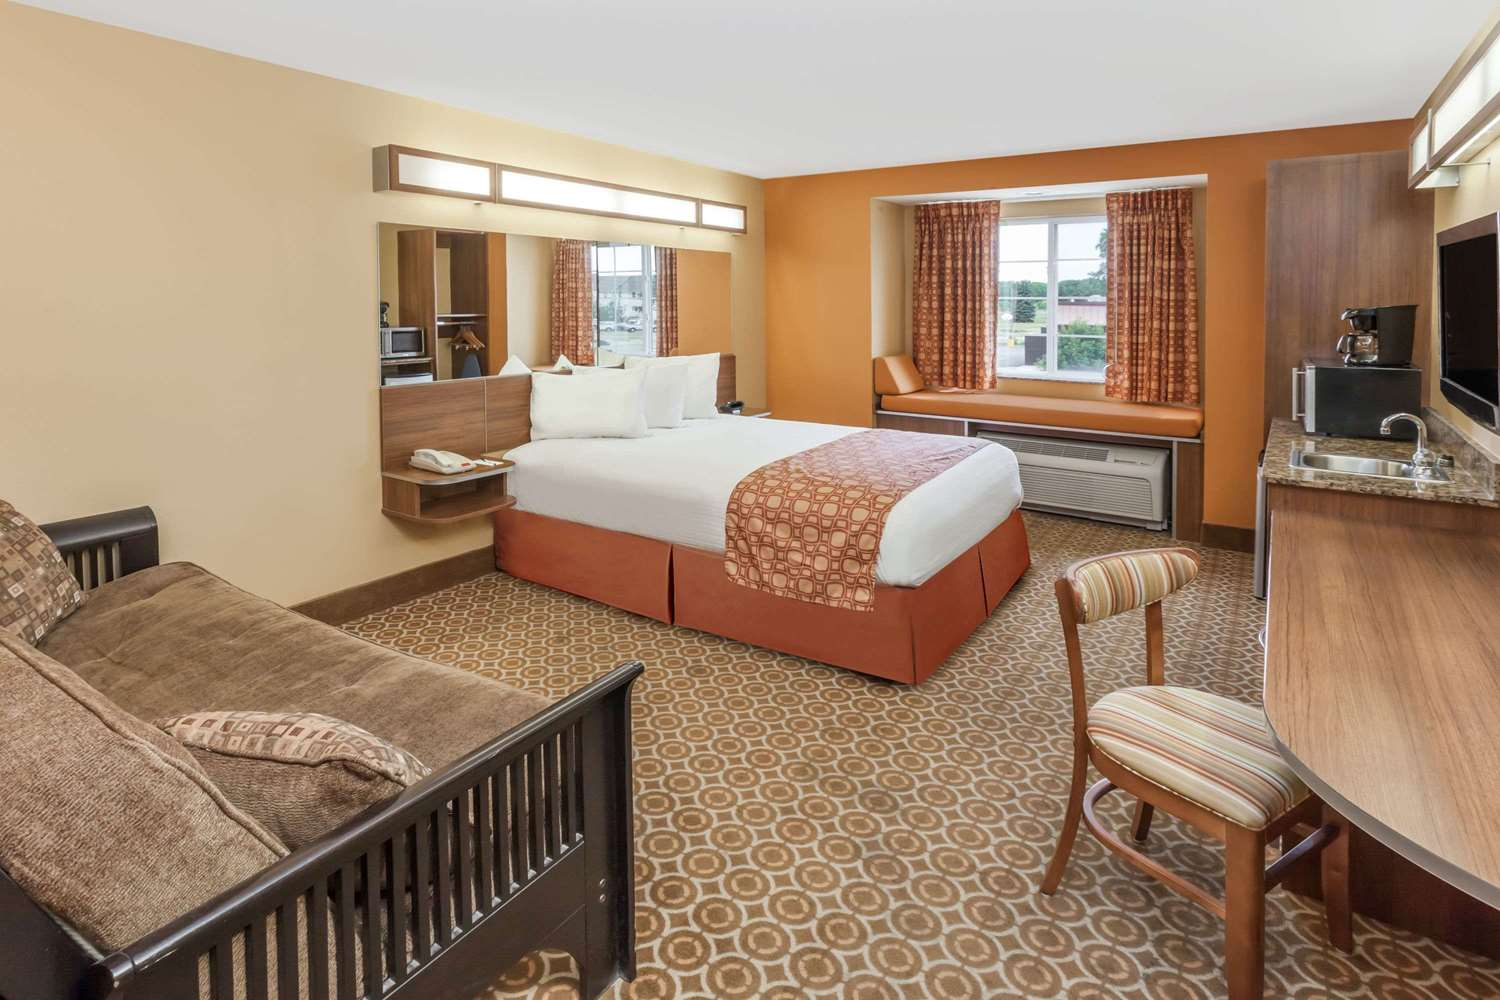 Room - Microtel Inn by Wyndham Notre Dame South Bend